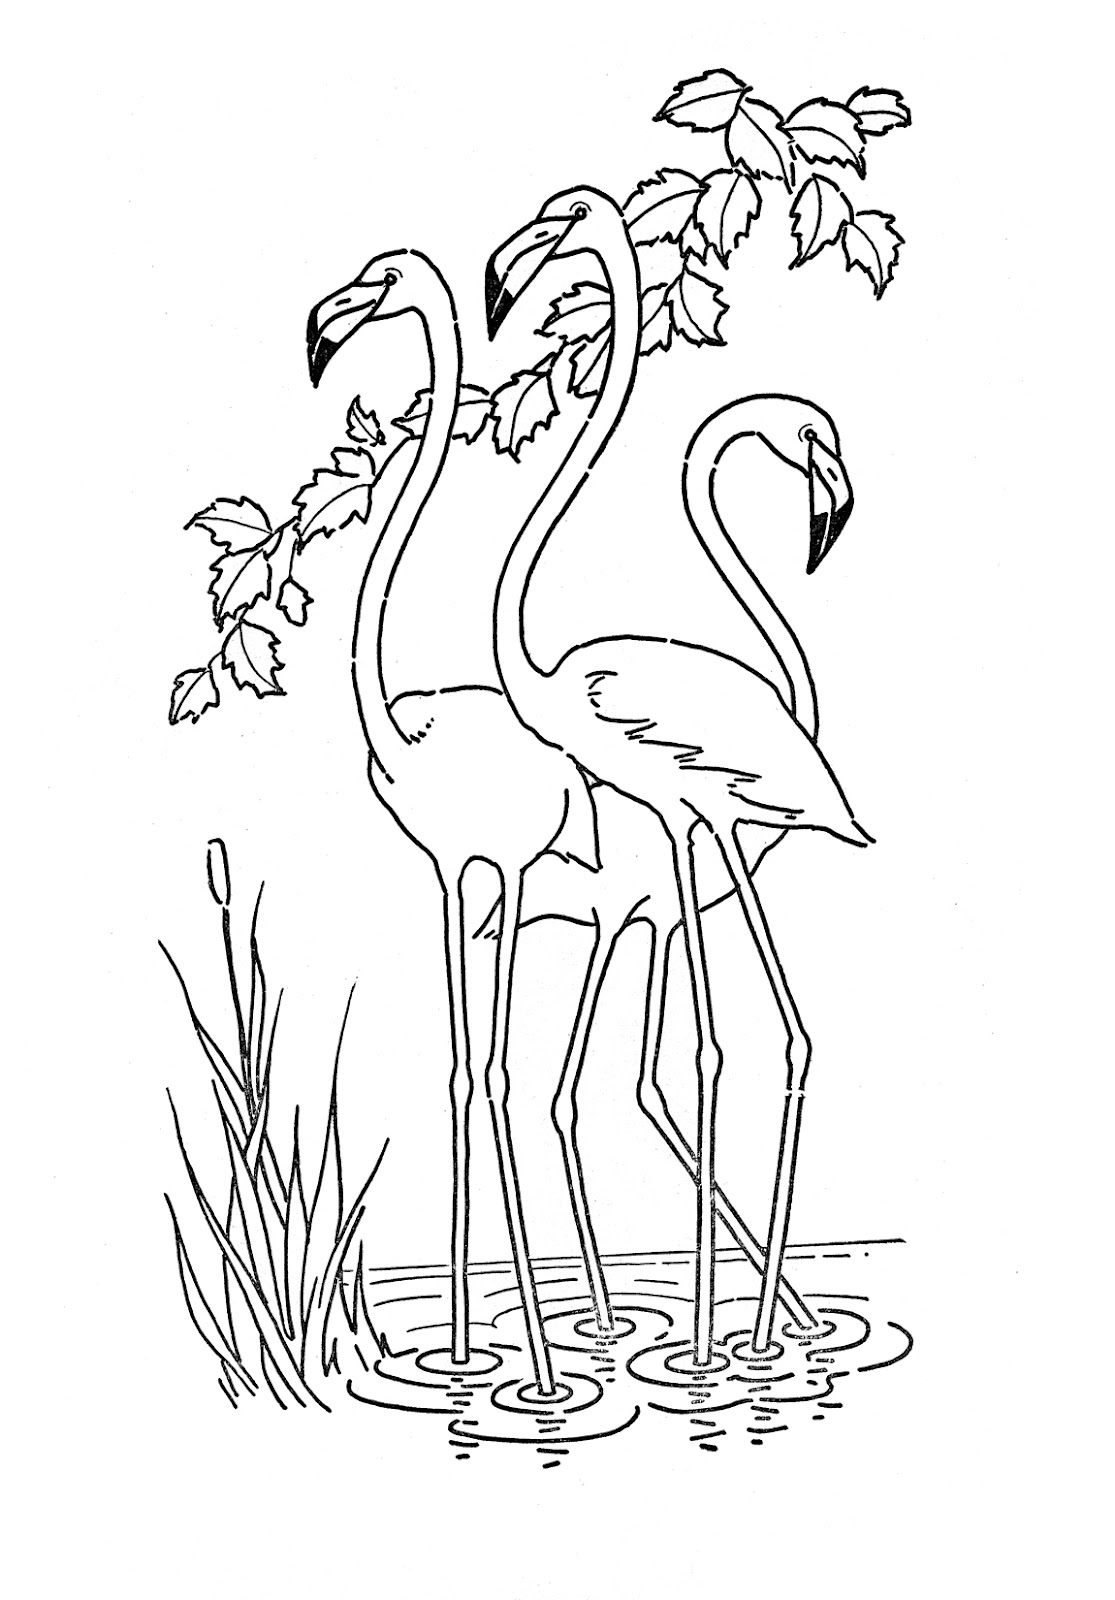 pictures of flamingos to color cute flamingo coloring pages for kids pictures flamingos of color to